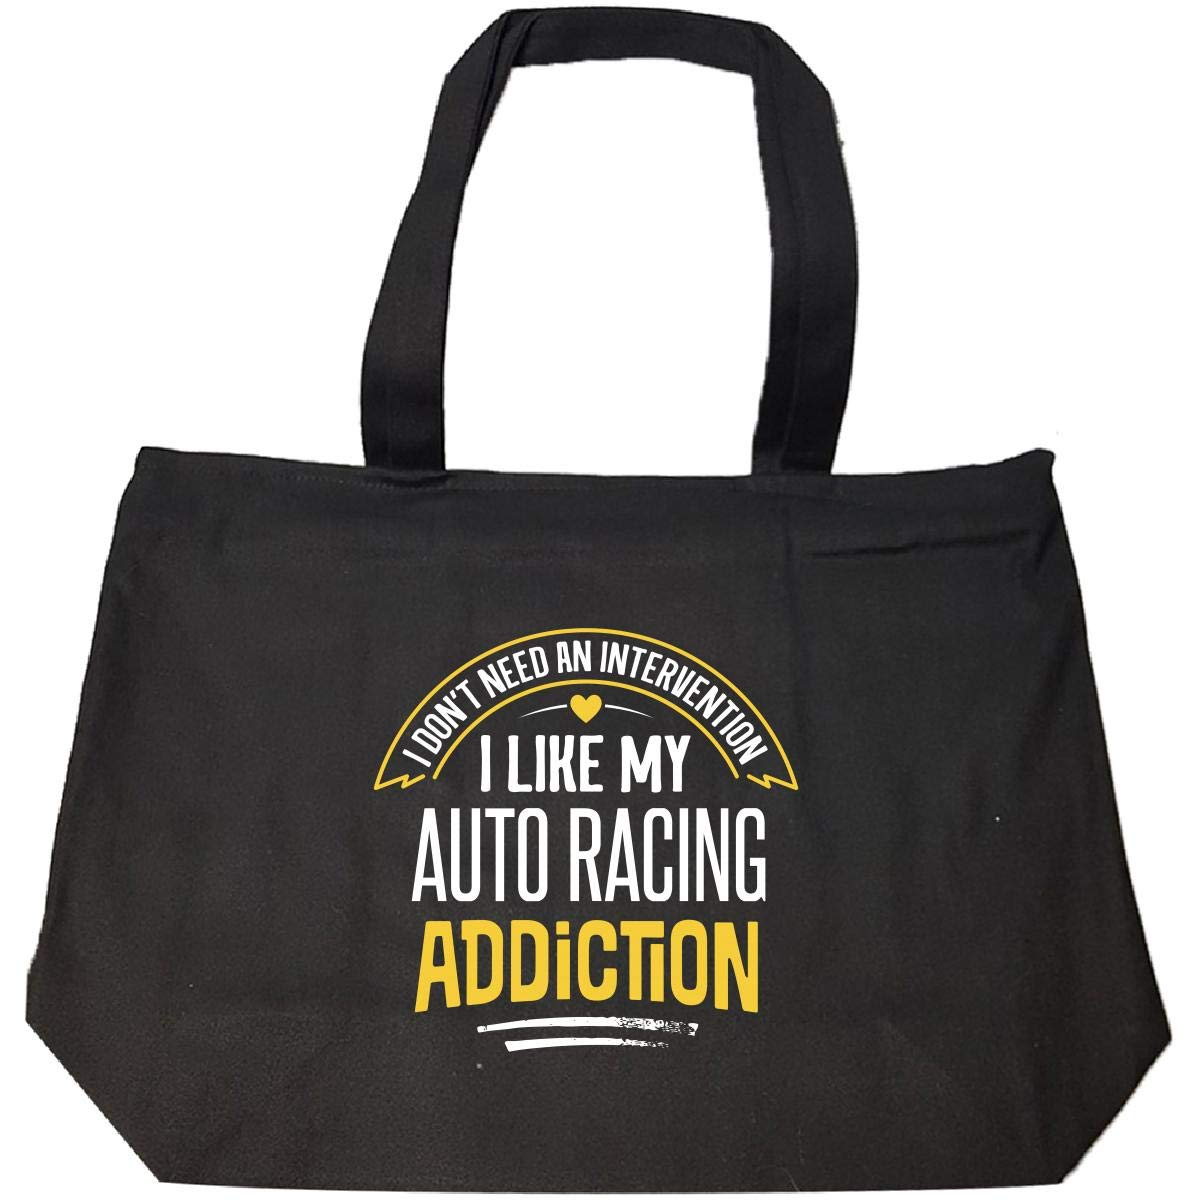 Funny Auto Racing Gift I Like My Addiction Loves Present Tote Bag With Zip